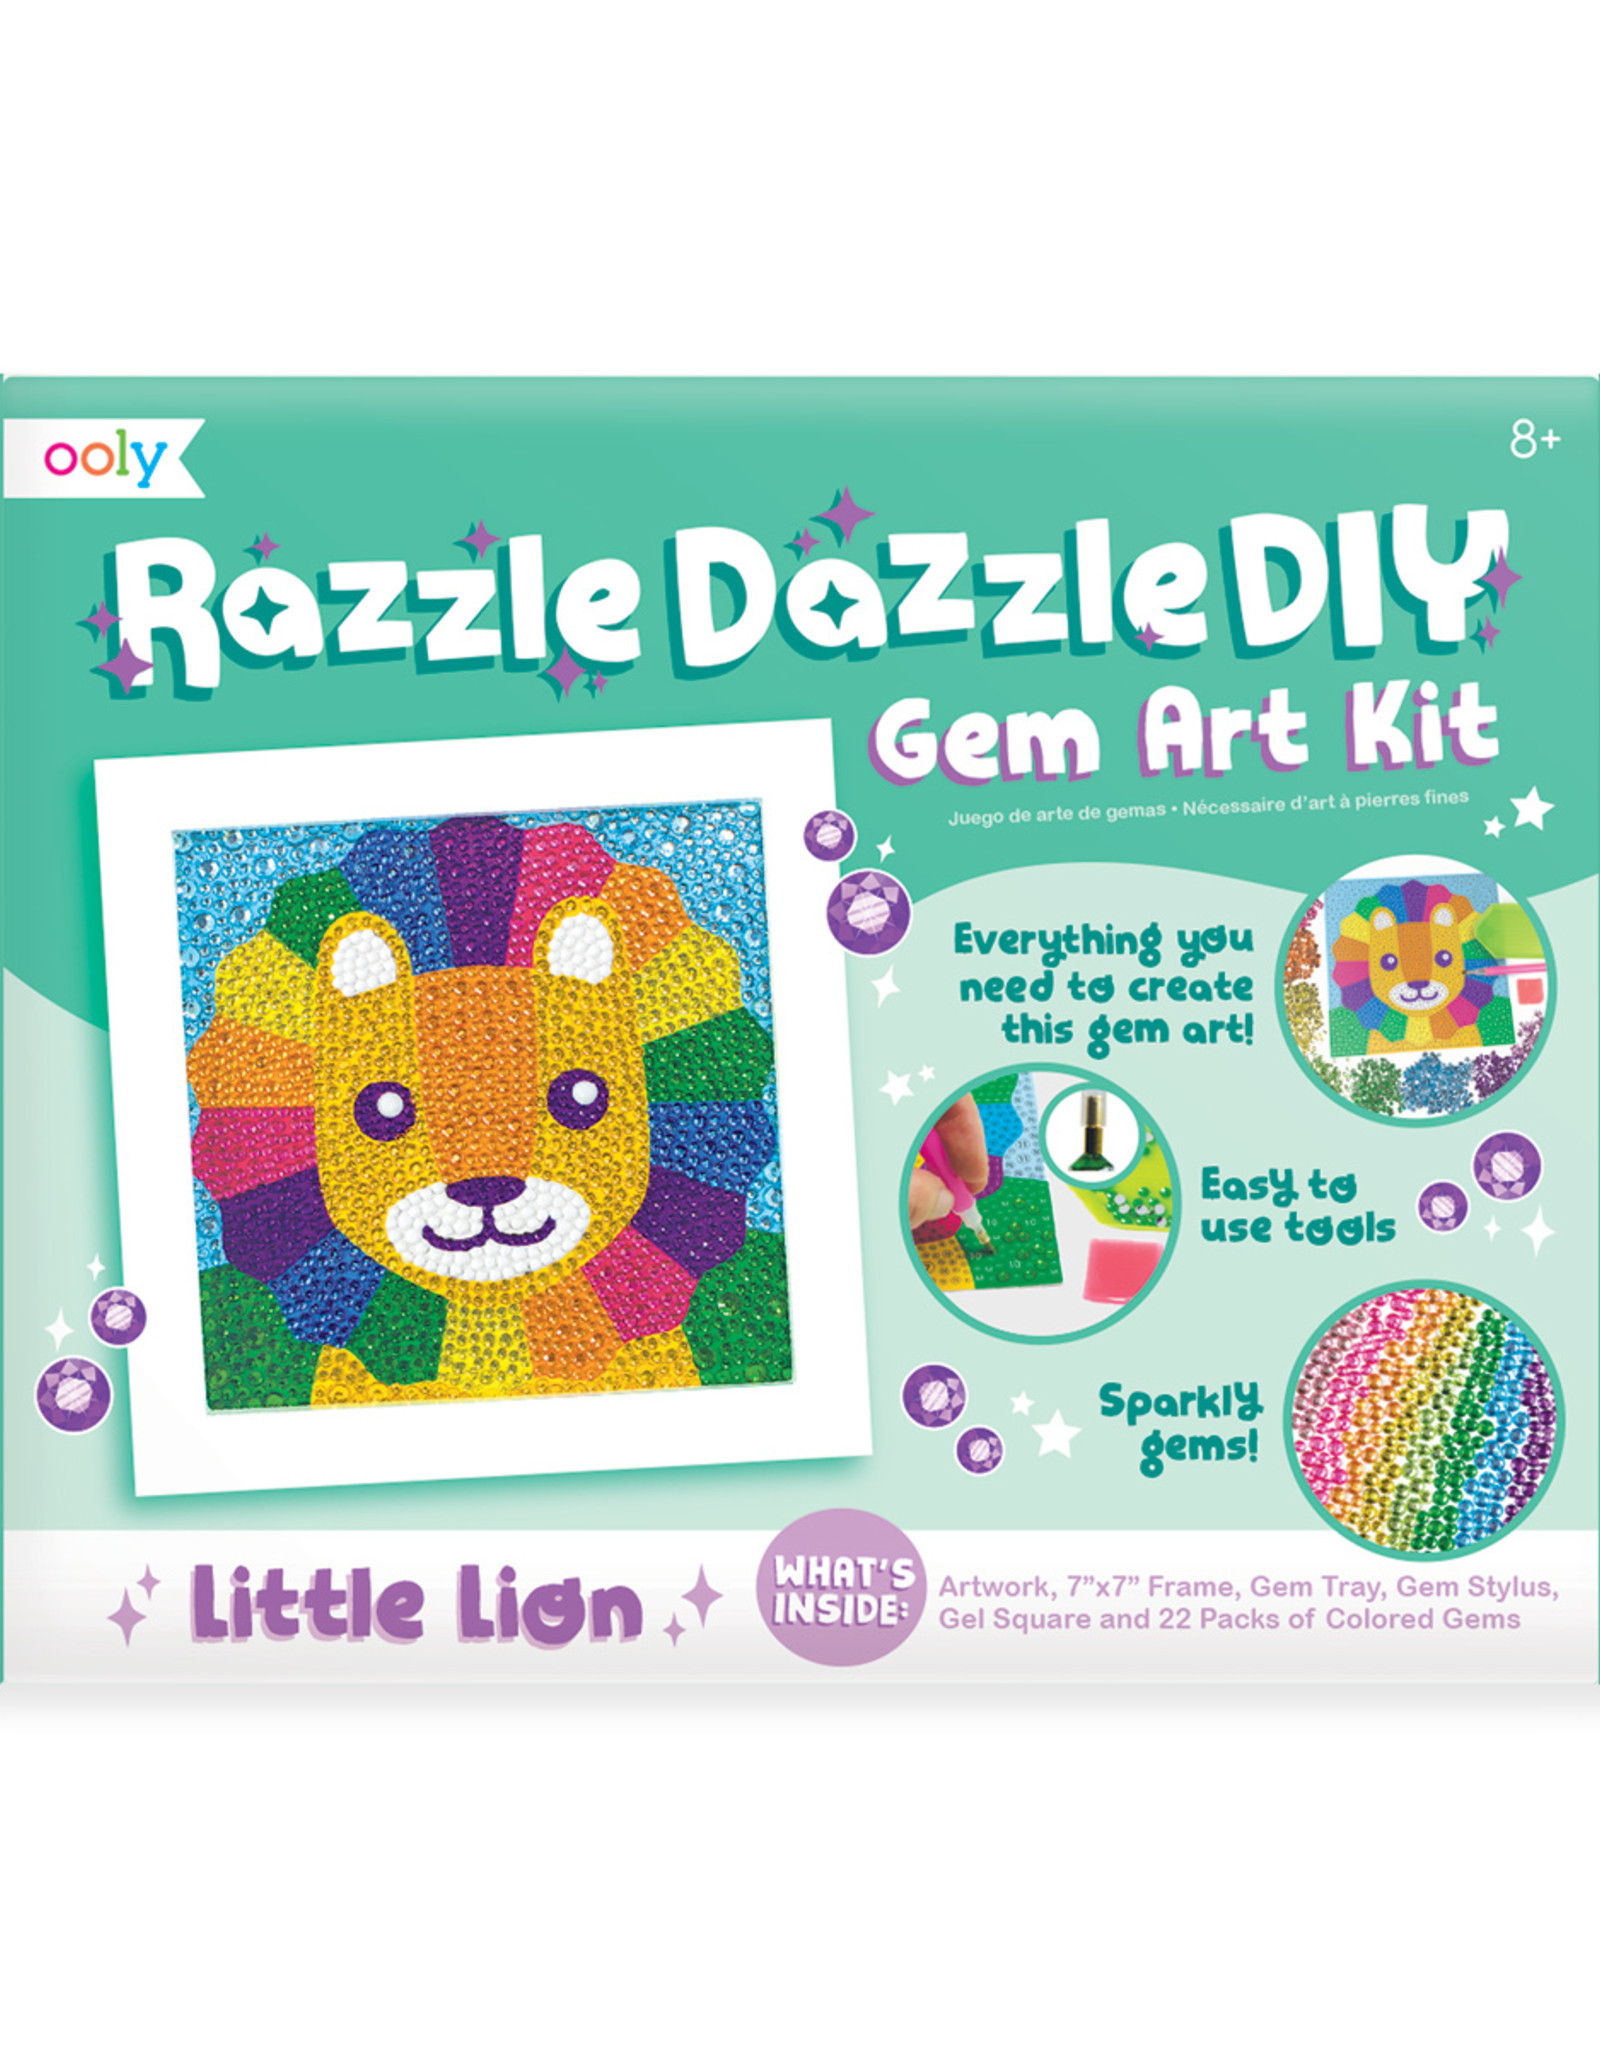 RAZZLE DAZZLE DIY GEM ART KIT